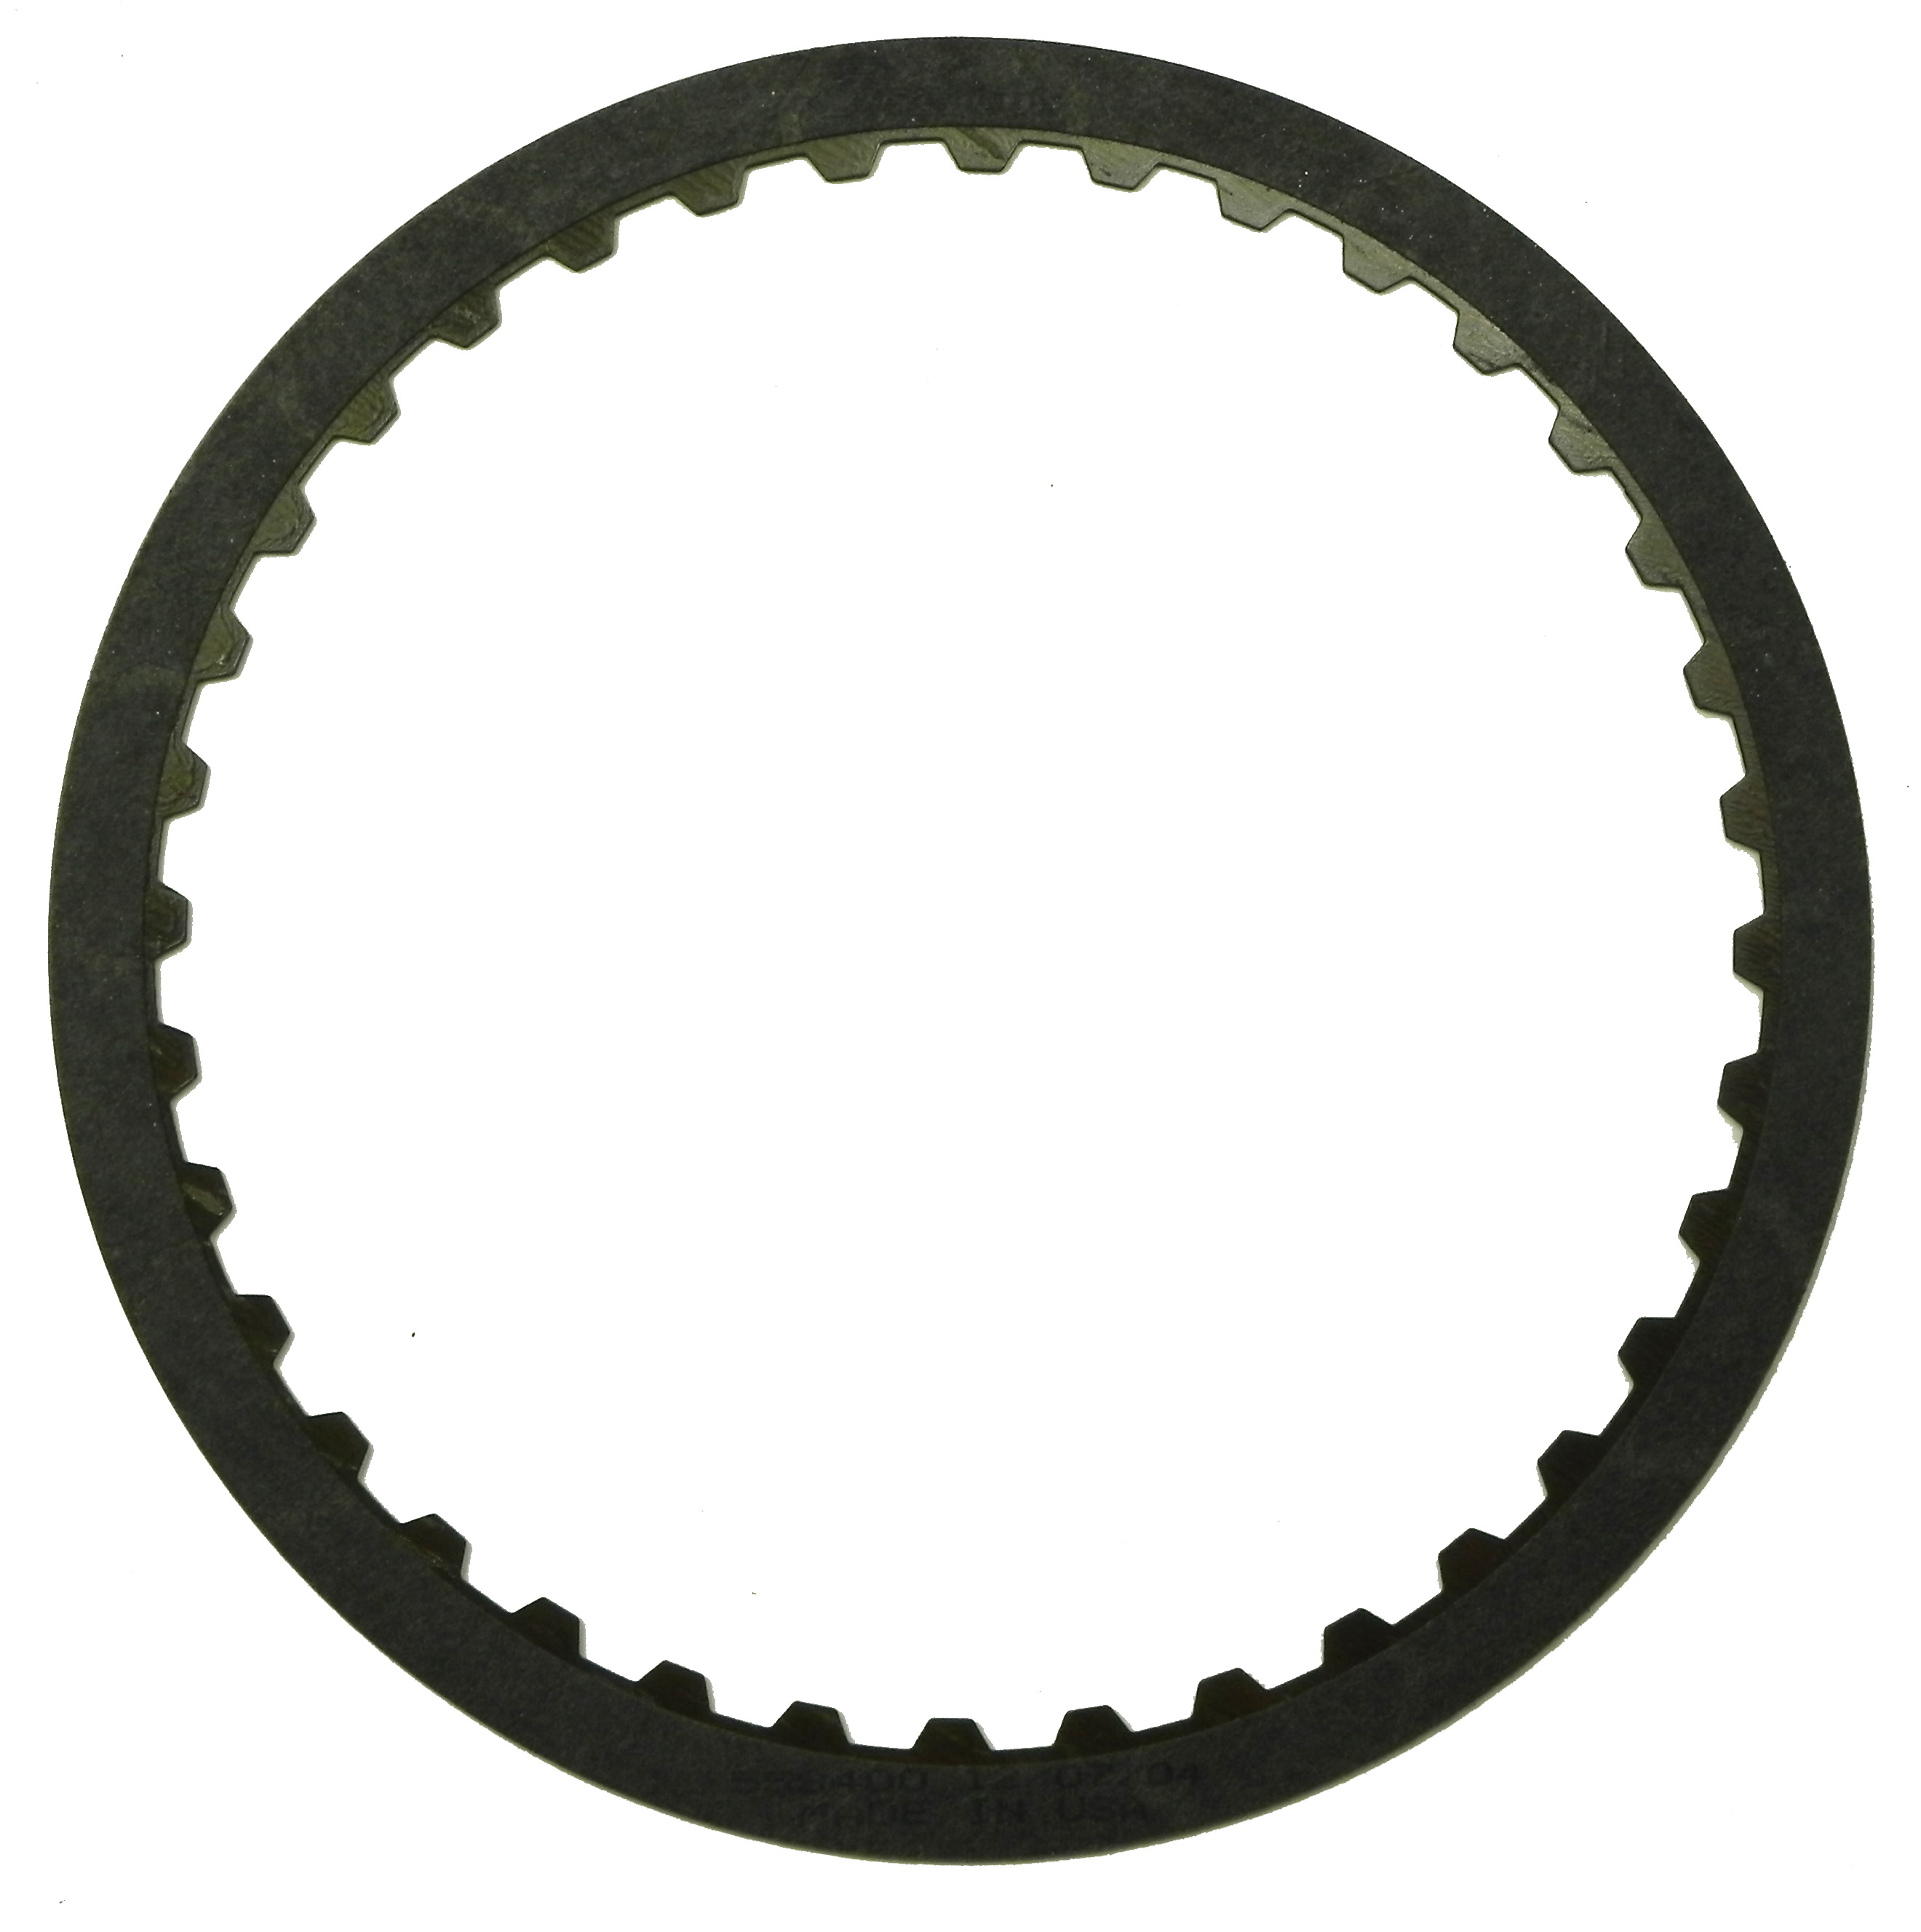 R558400   1999-ON Friction Clutch Plate High Energy 2nd, Coast, Low, Reverse, Direct Single Sided, ID Spline (Except AWD) High Energy